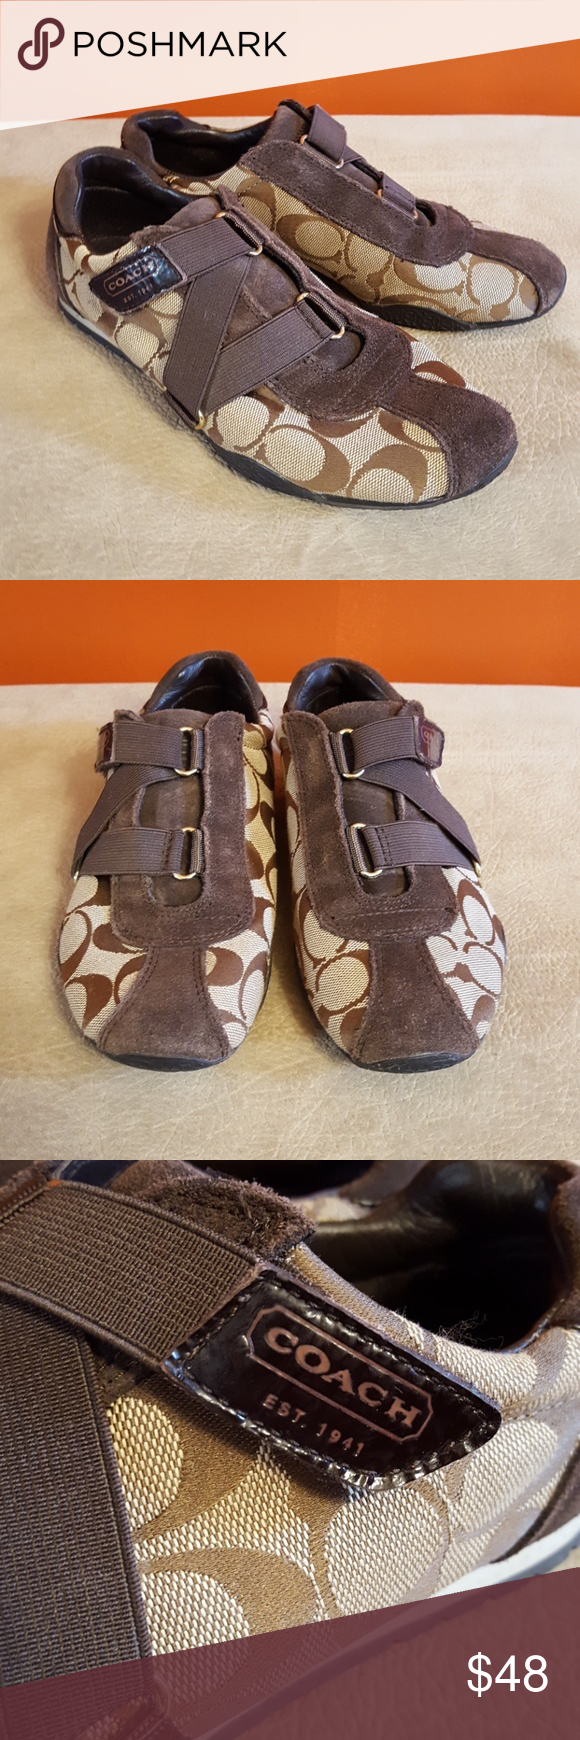 39cc571b9c74 Coach Kyrie Signature Sneakers Velcro strap closure. Coach signature  printed pattern on canvas material  suede trimmings  gold hardware.